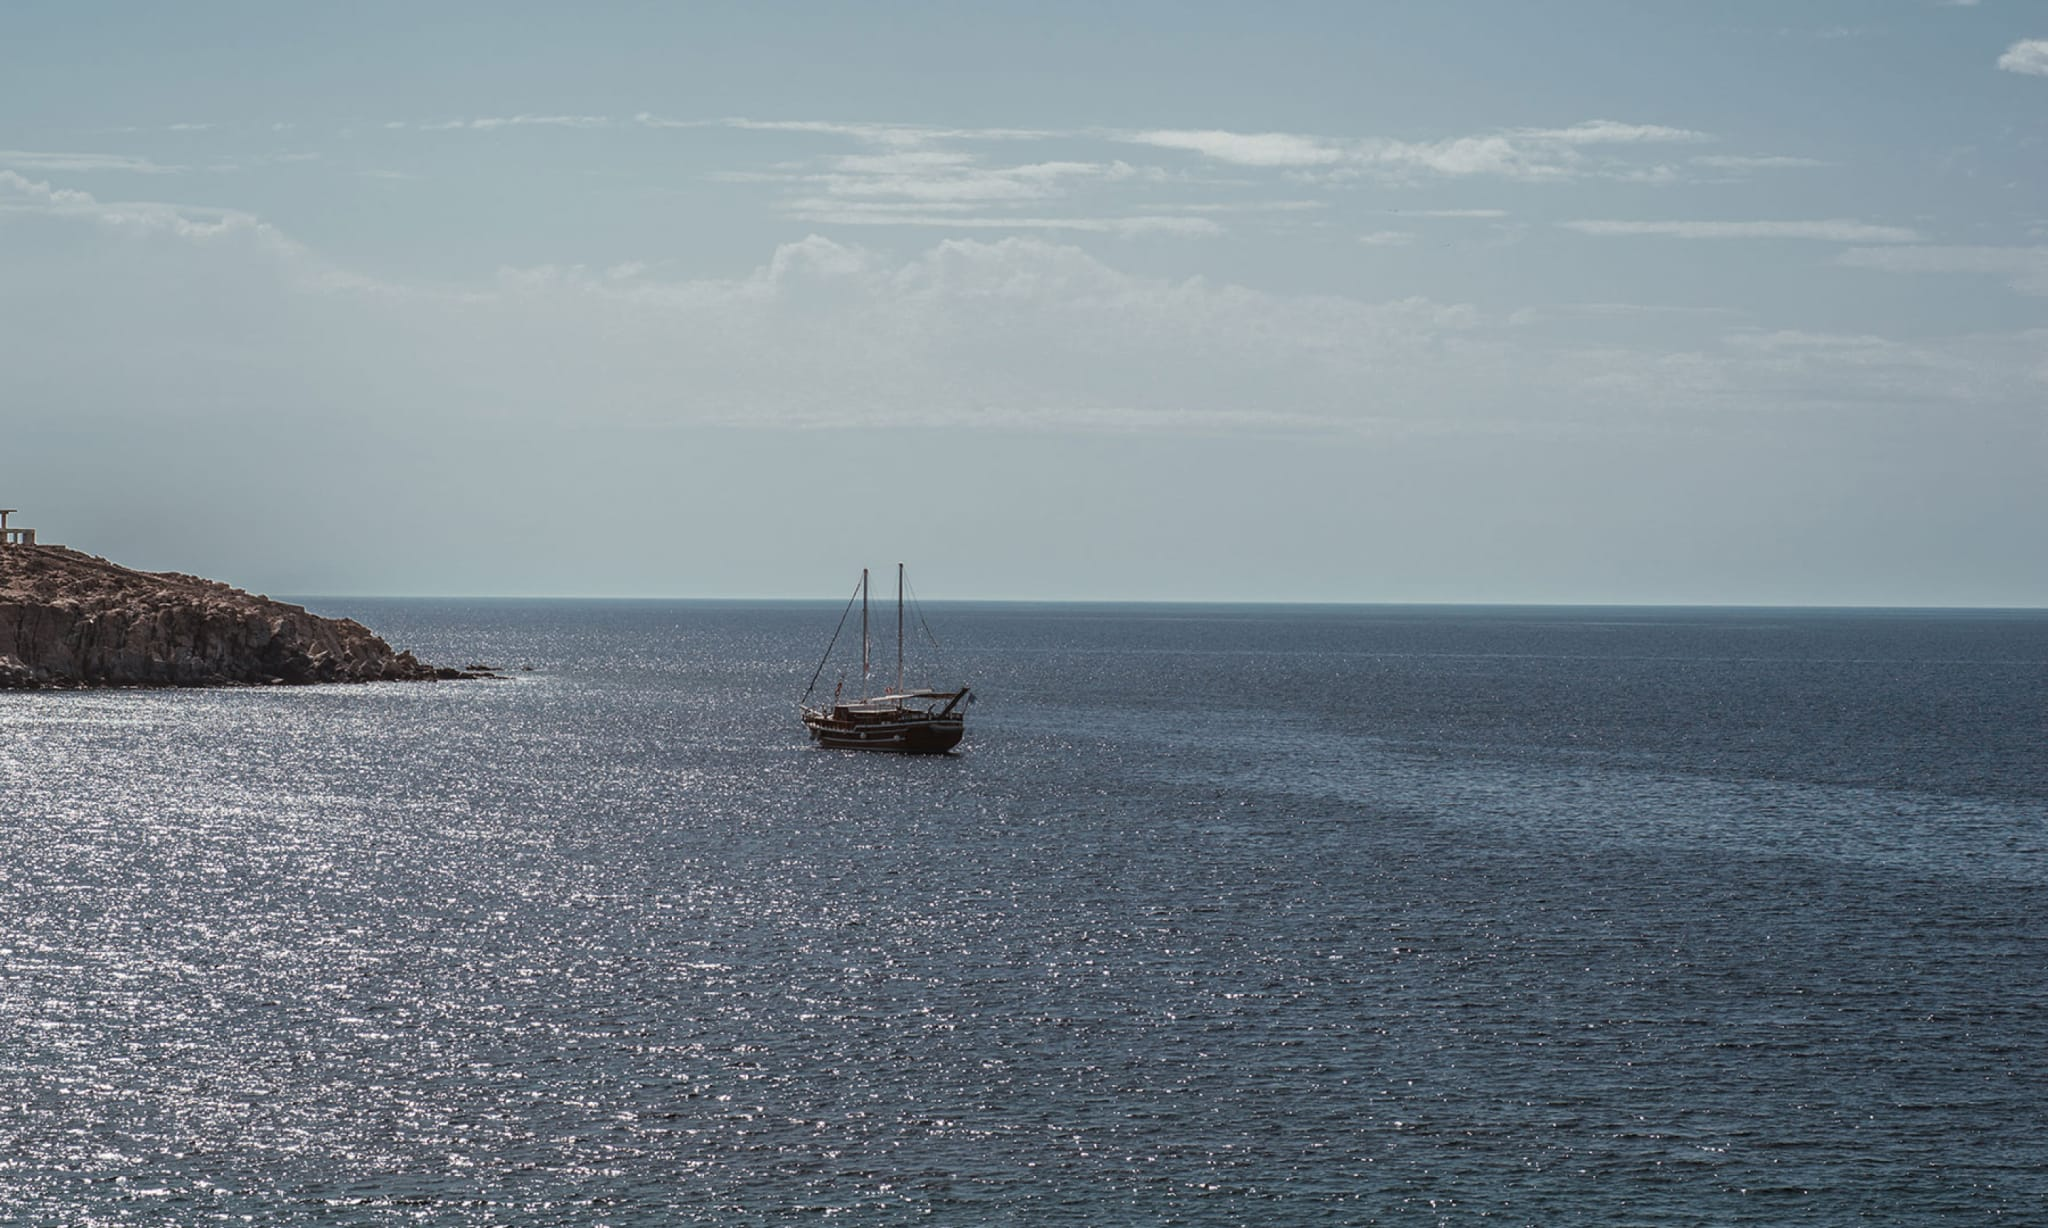 A boat on the sea.